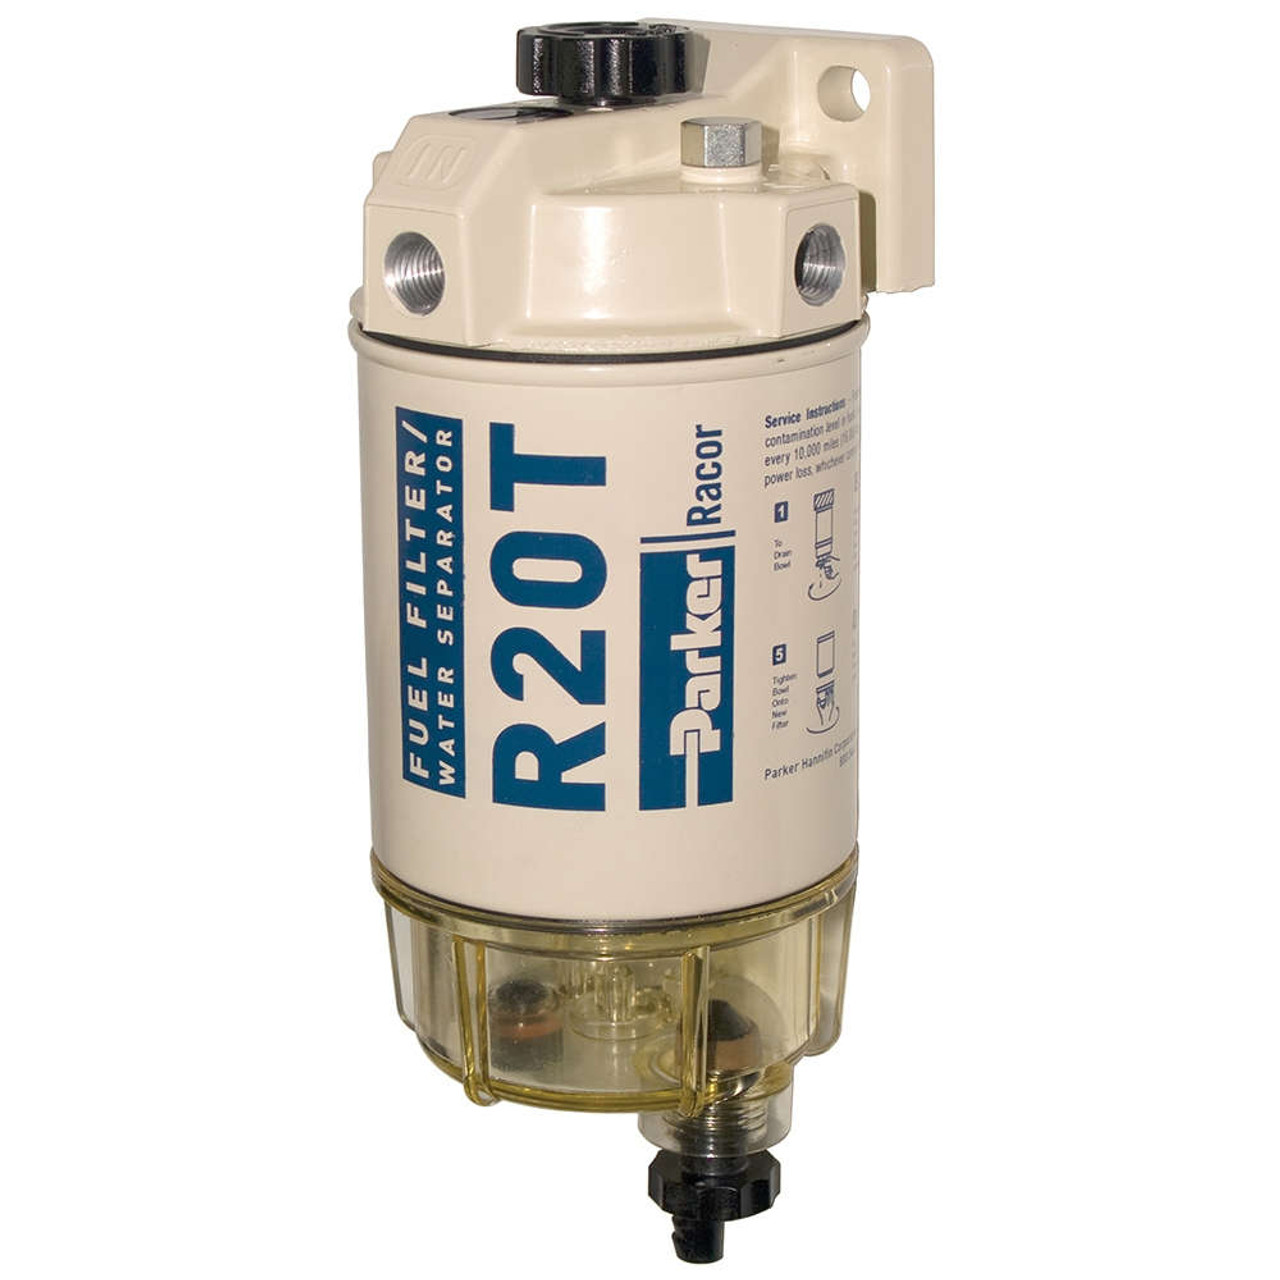 hight resolution of racor 200 series 30 gph low flow diesel fuel filter water separator 230 filter assembly